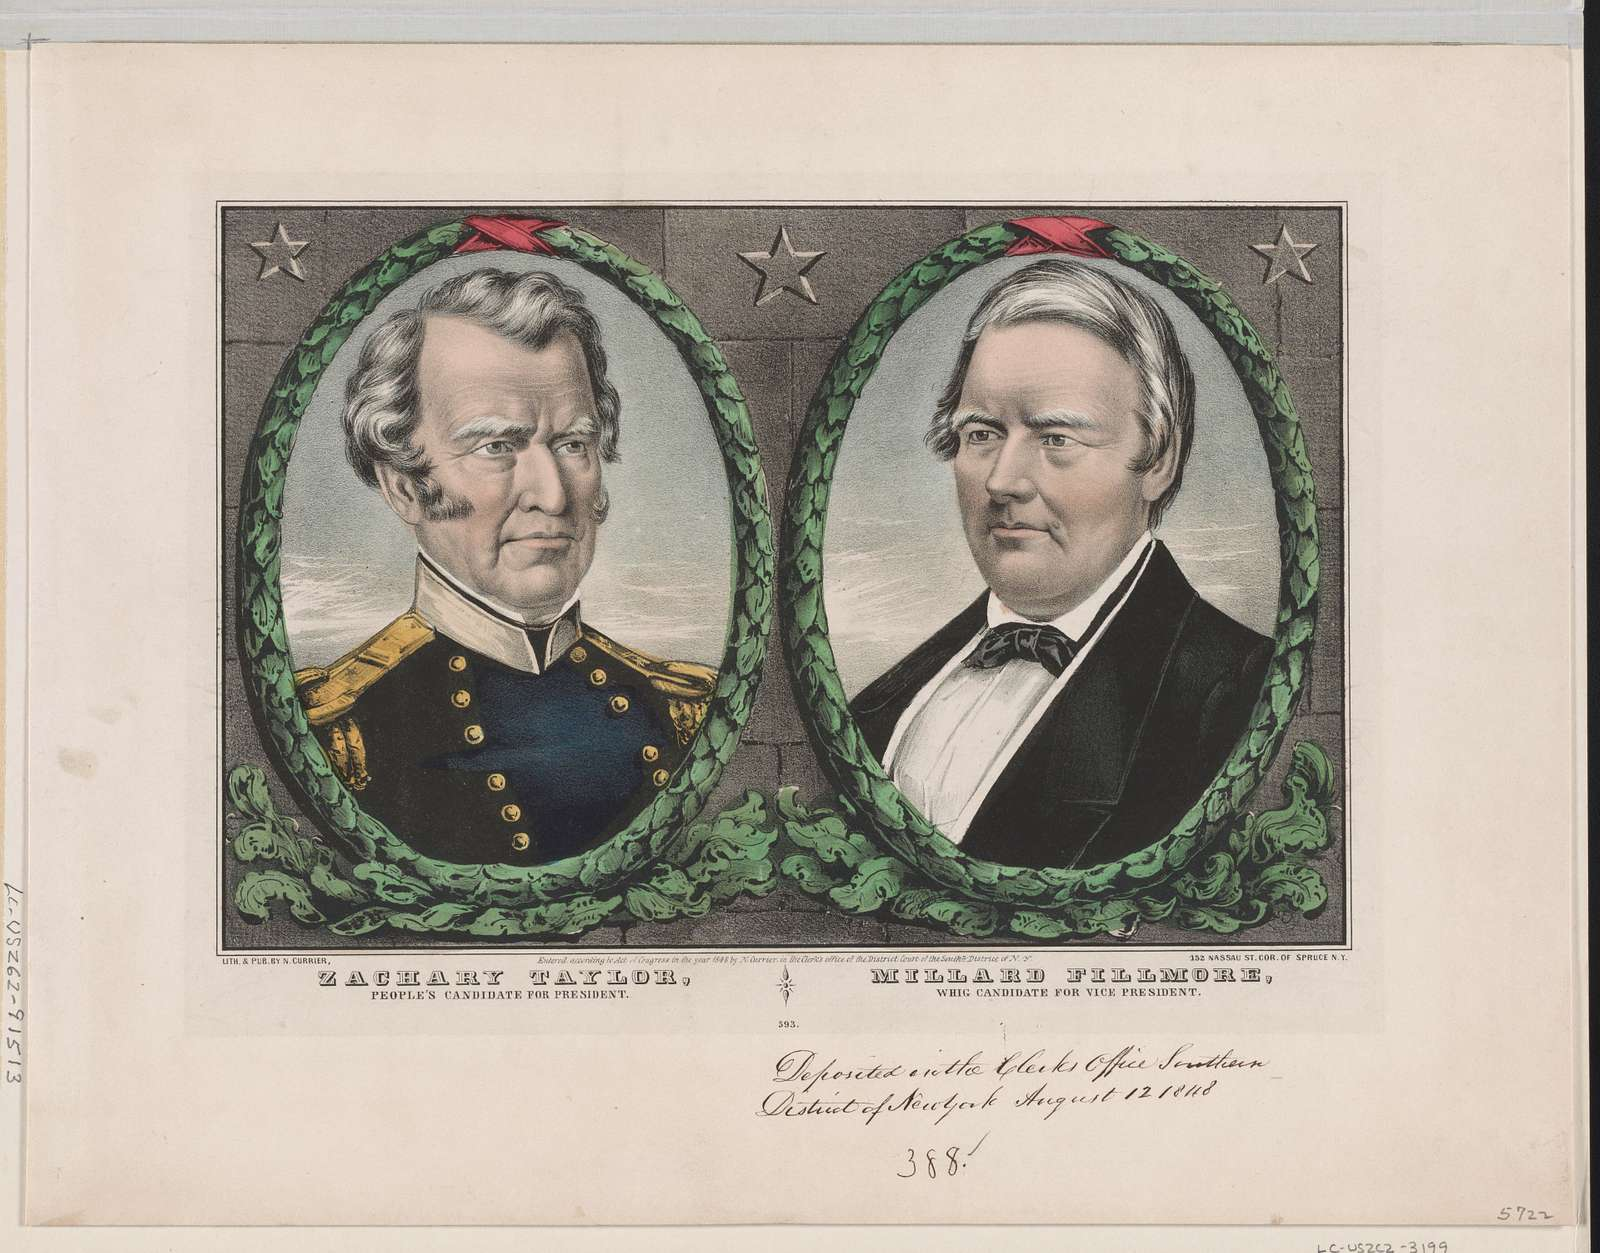 Zachary Taylor, people's candidate for President